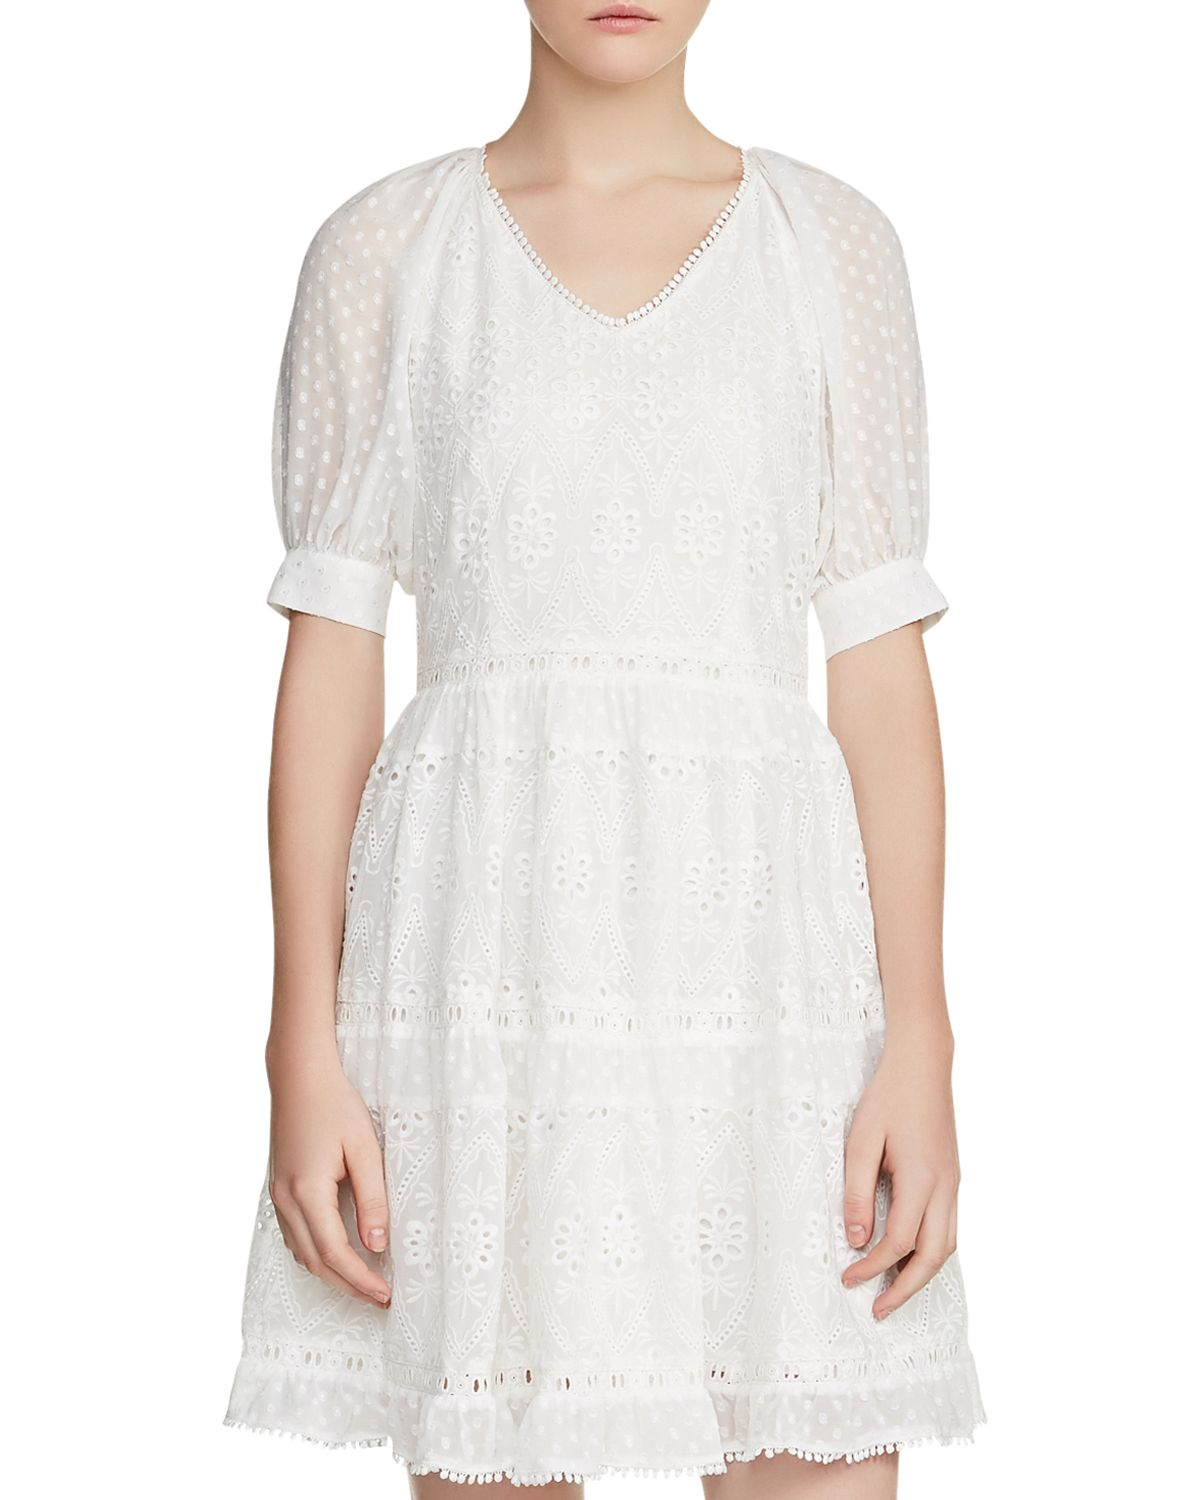 Revery Broderie Anglaise & Swiss Dot Dress by Maje